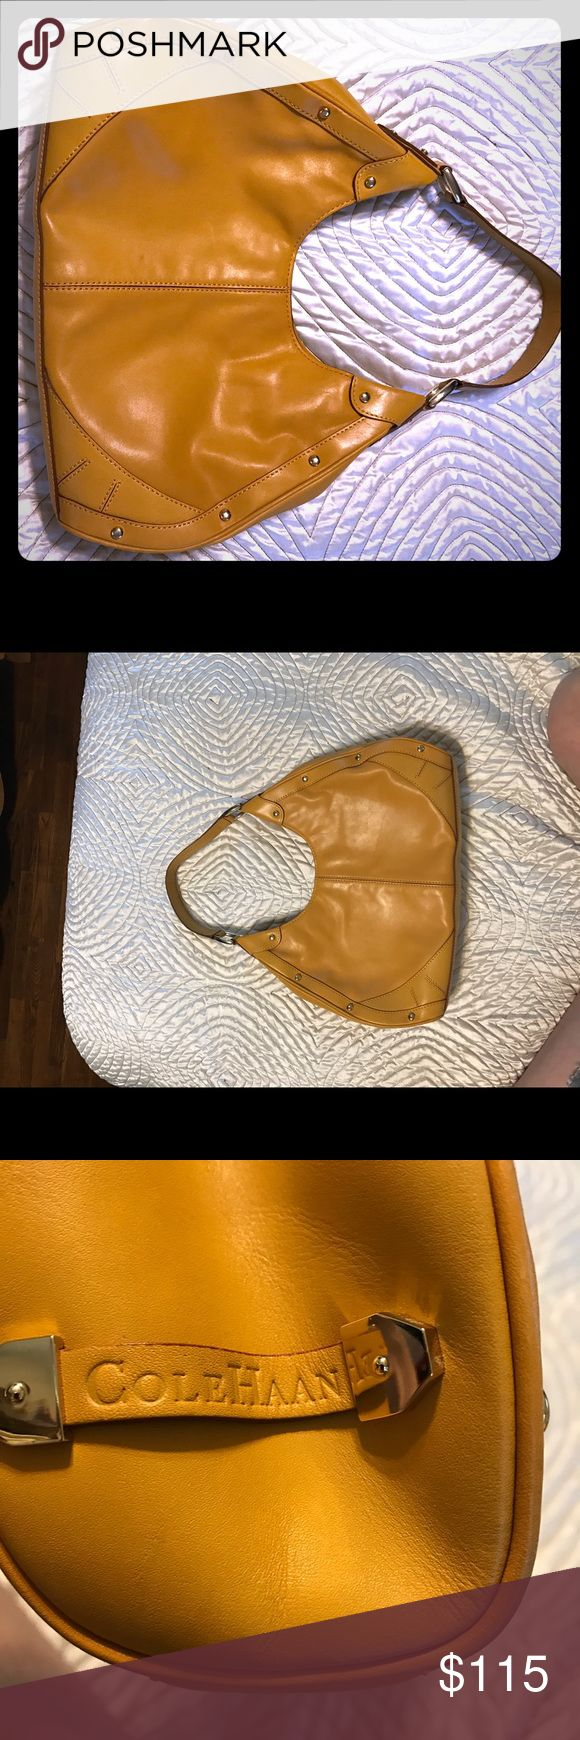 Cole Hahn Bag NWOT This is a buttery soft expensive Cole Hahn bag purchased for me at the Cole Hahn store at the Town Center Mall in Boca Raton and never used. Cole Haan Bags